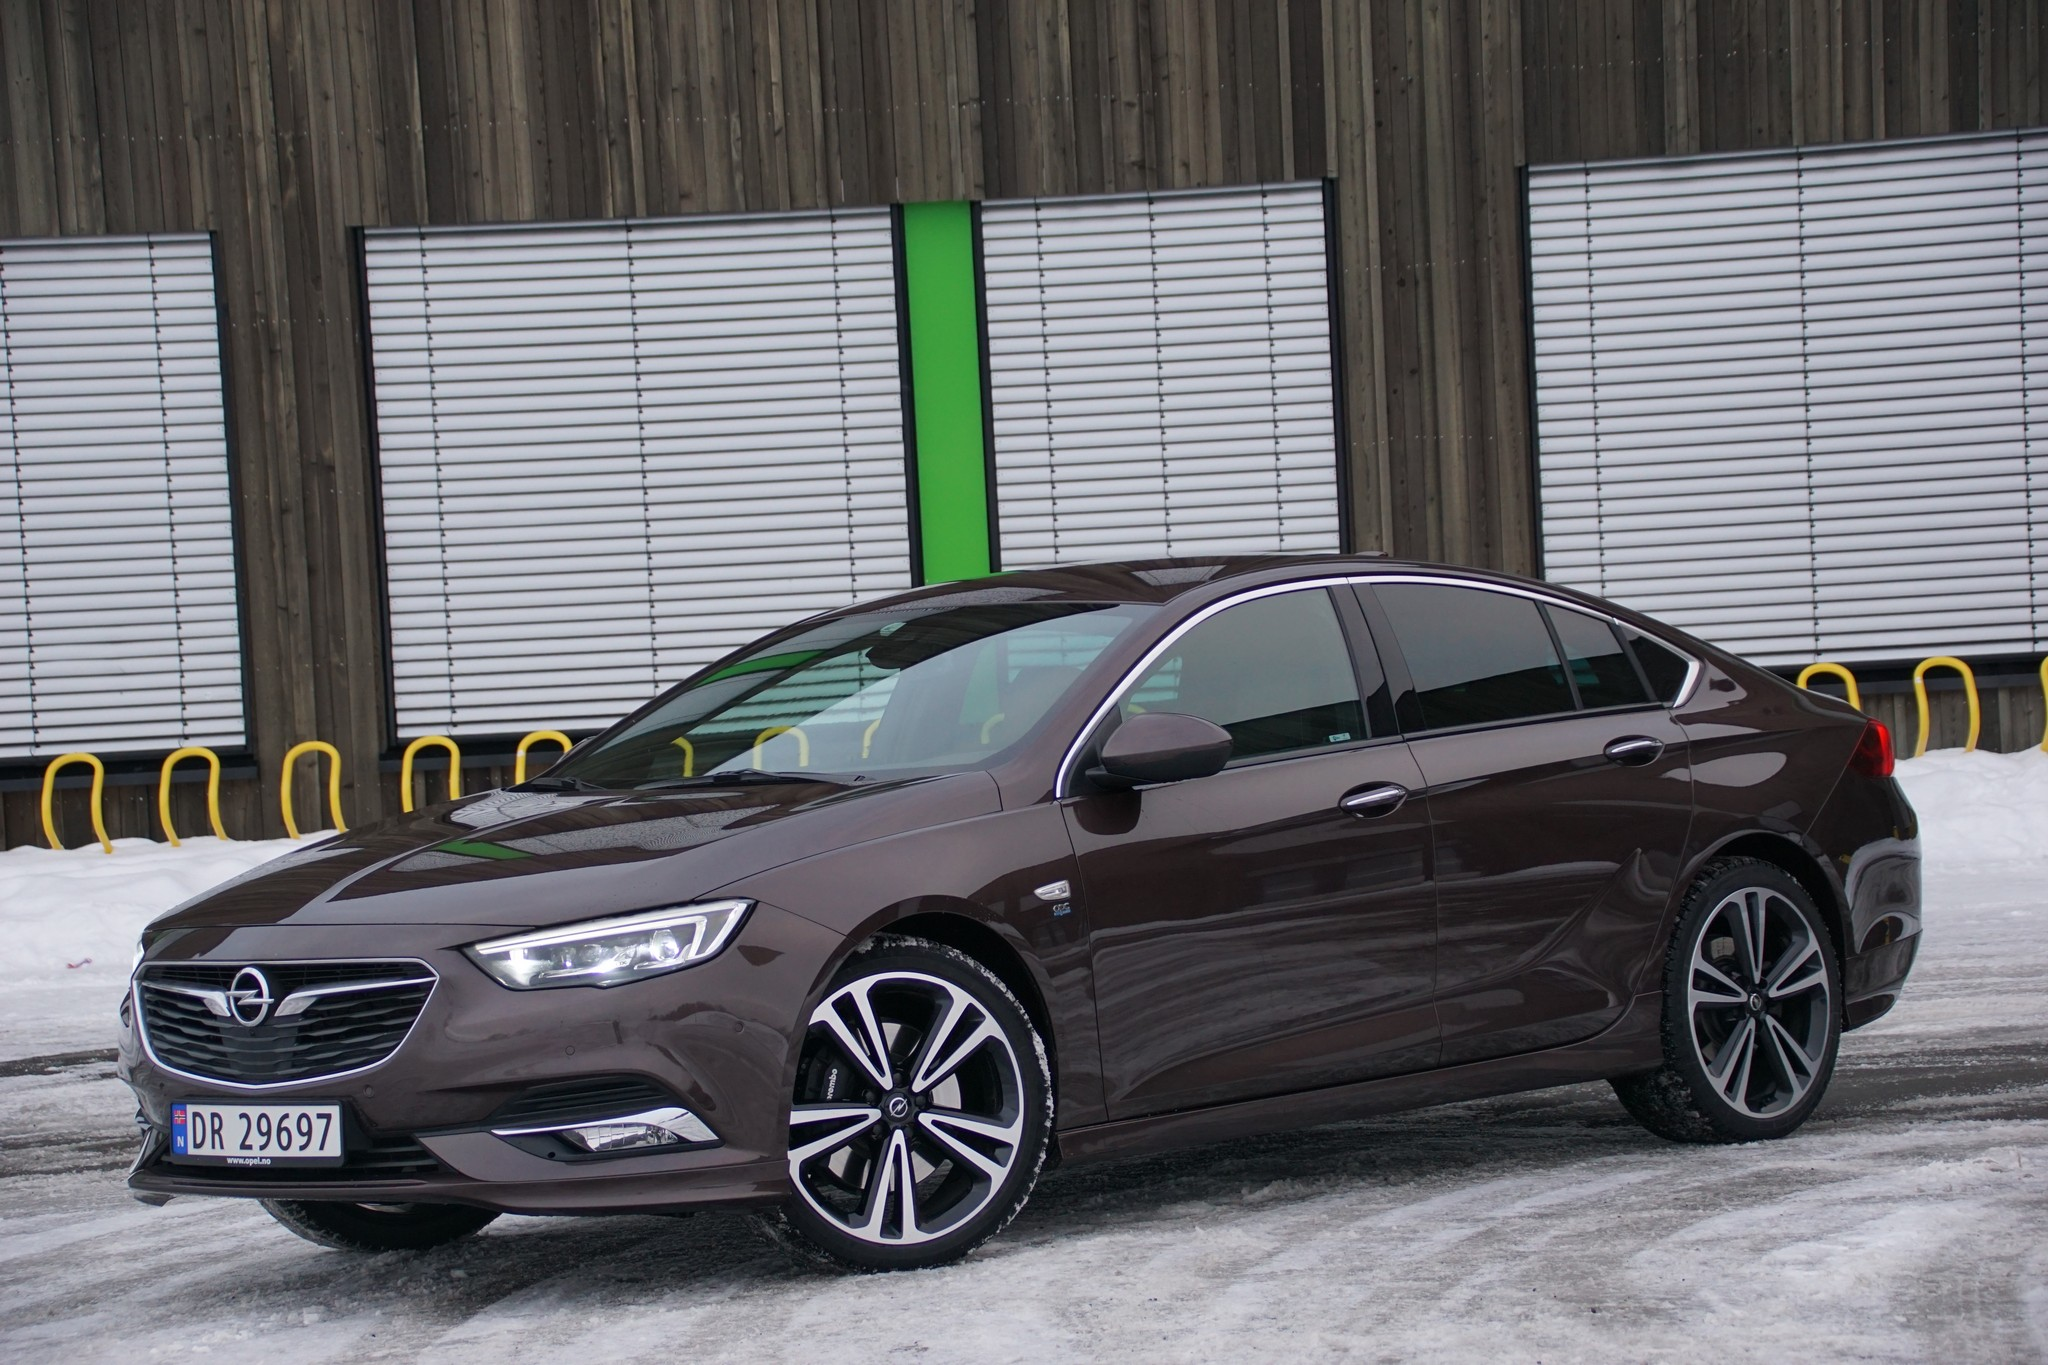 test opel insignia 2 0 turbo awd bil og motorbloggen. Black Bedroom Furniture Sets. Home Design Ideas